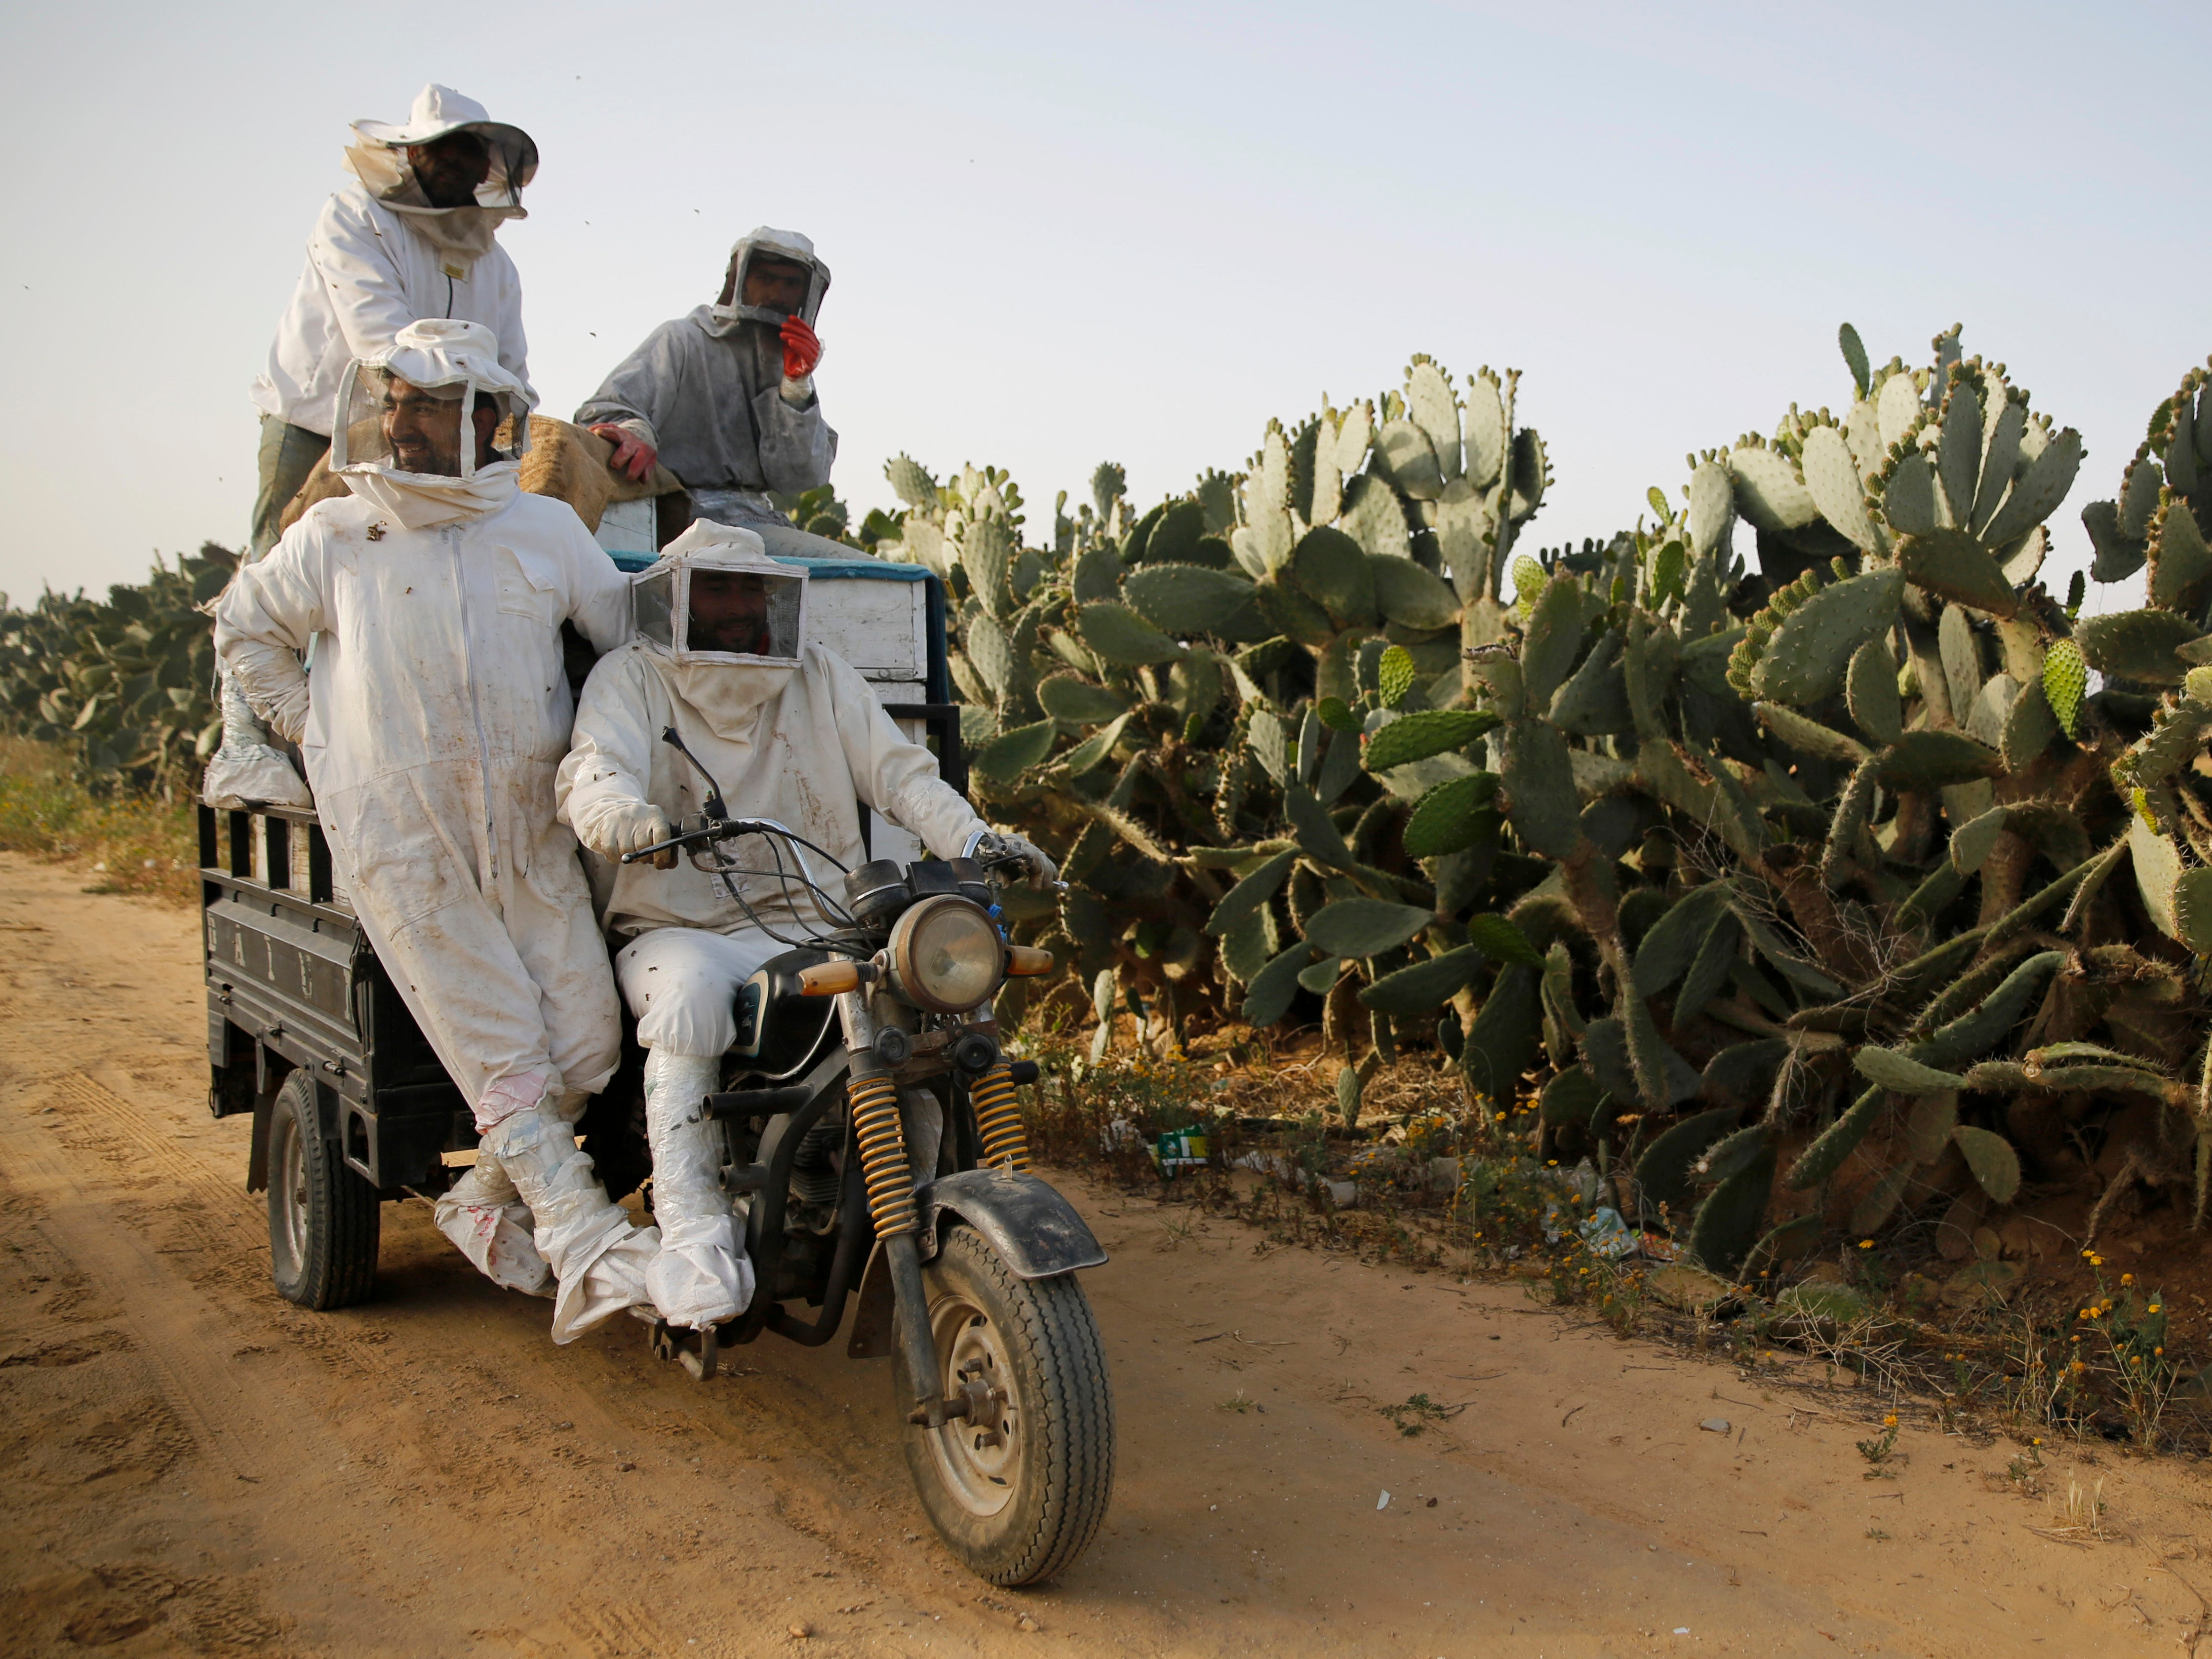 Palestinian beekeepers ride to a hive during a day harvesting honey in east Khan Younis near the border with Israel, Thursday, April 25, 2019.